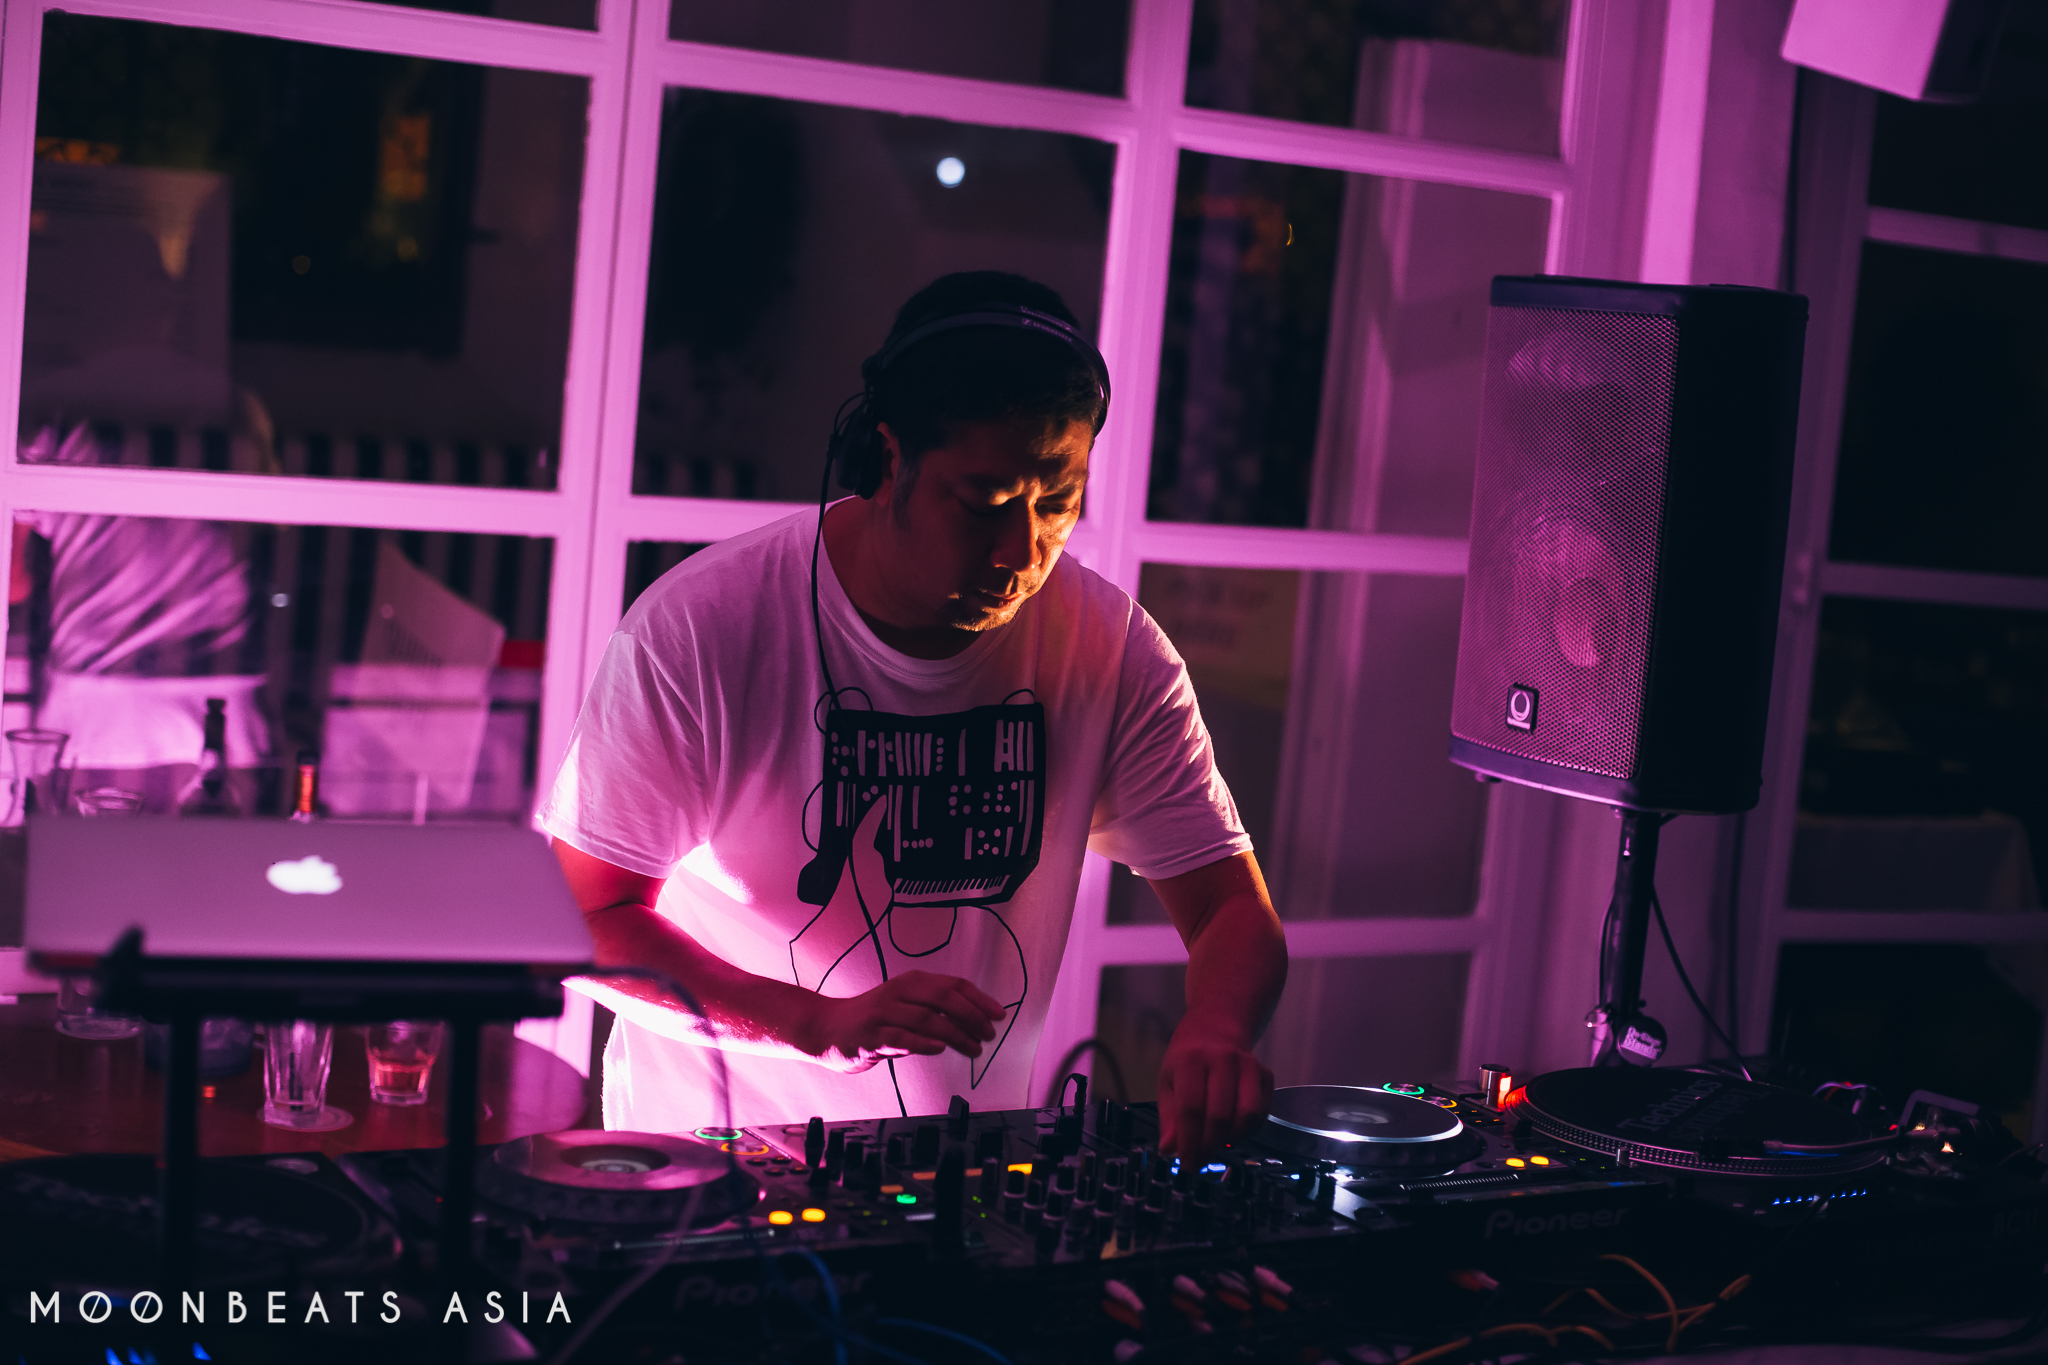 DJ KFC / The Rabbit Hole, Singapore